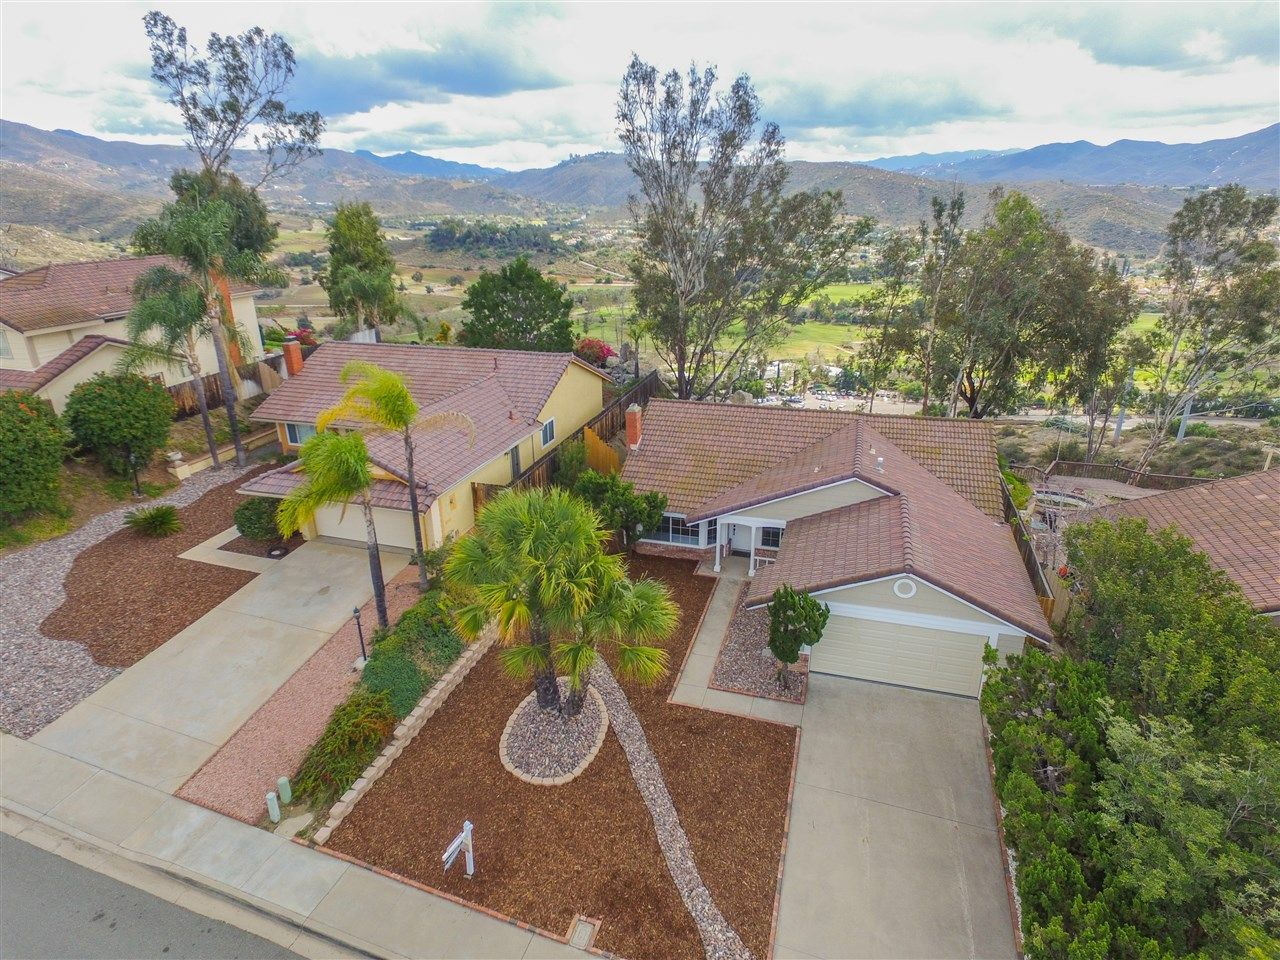 Main Photo: RANCHO SAN DIEGO House for sale : 4 bedrooms : 2324 Wind River in El Cajon